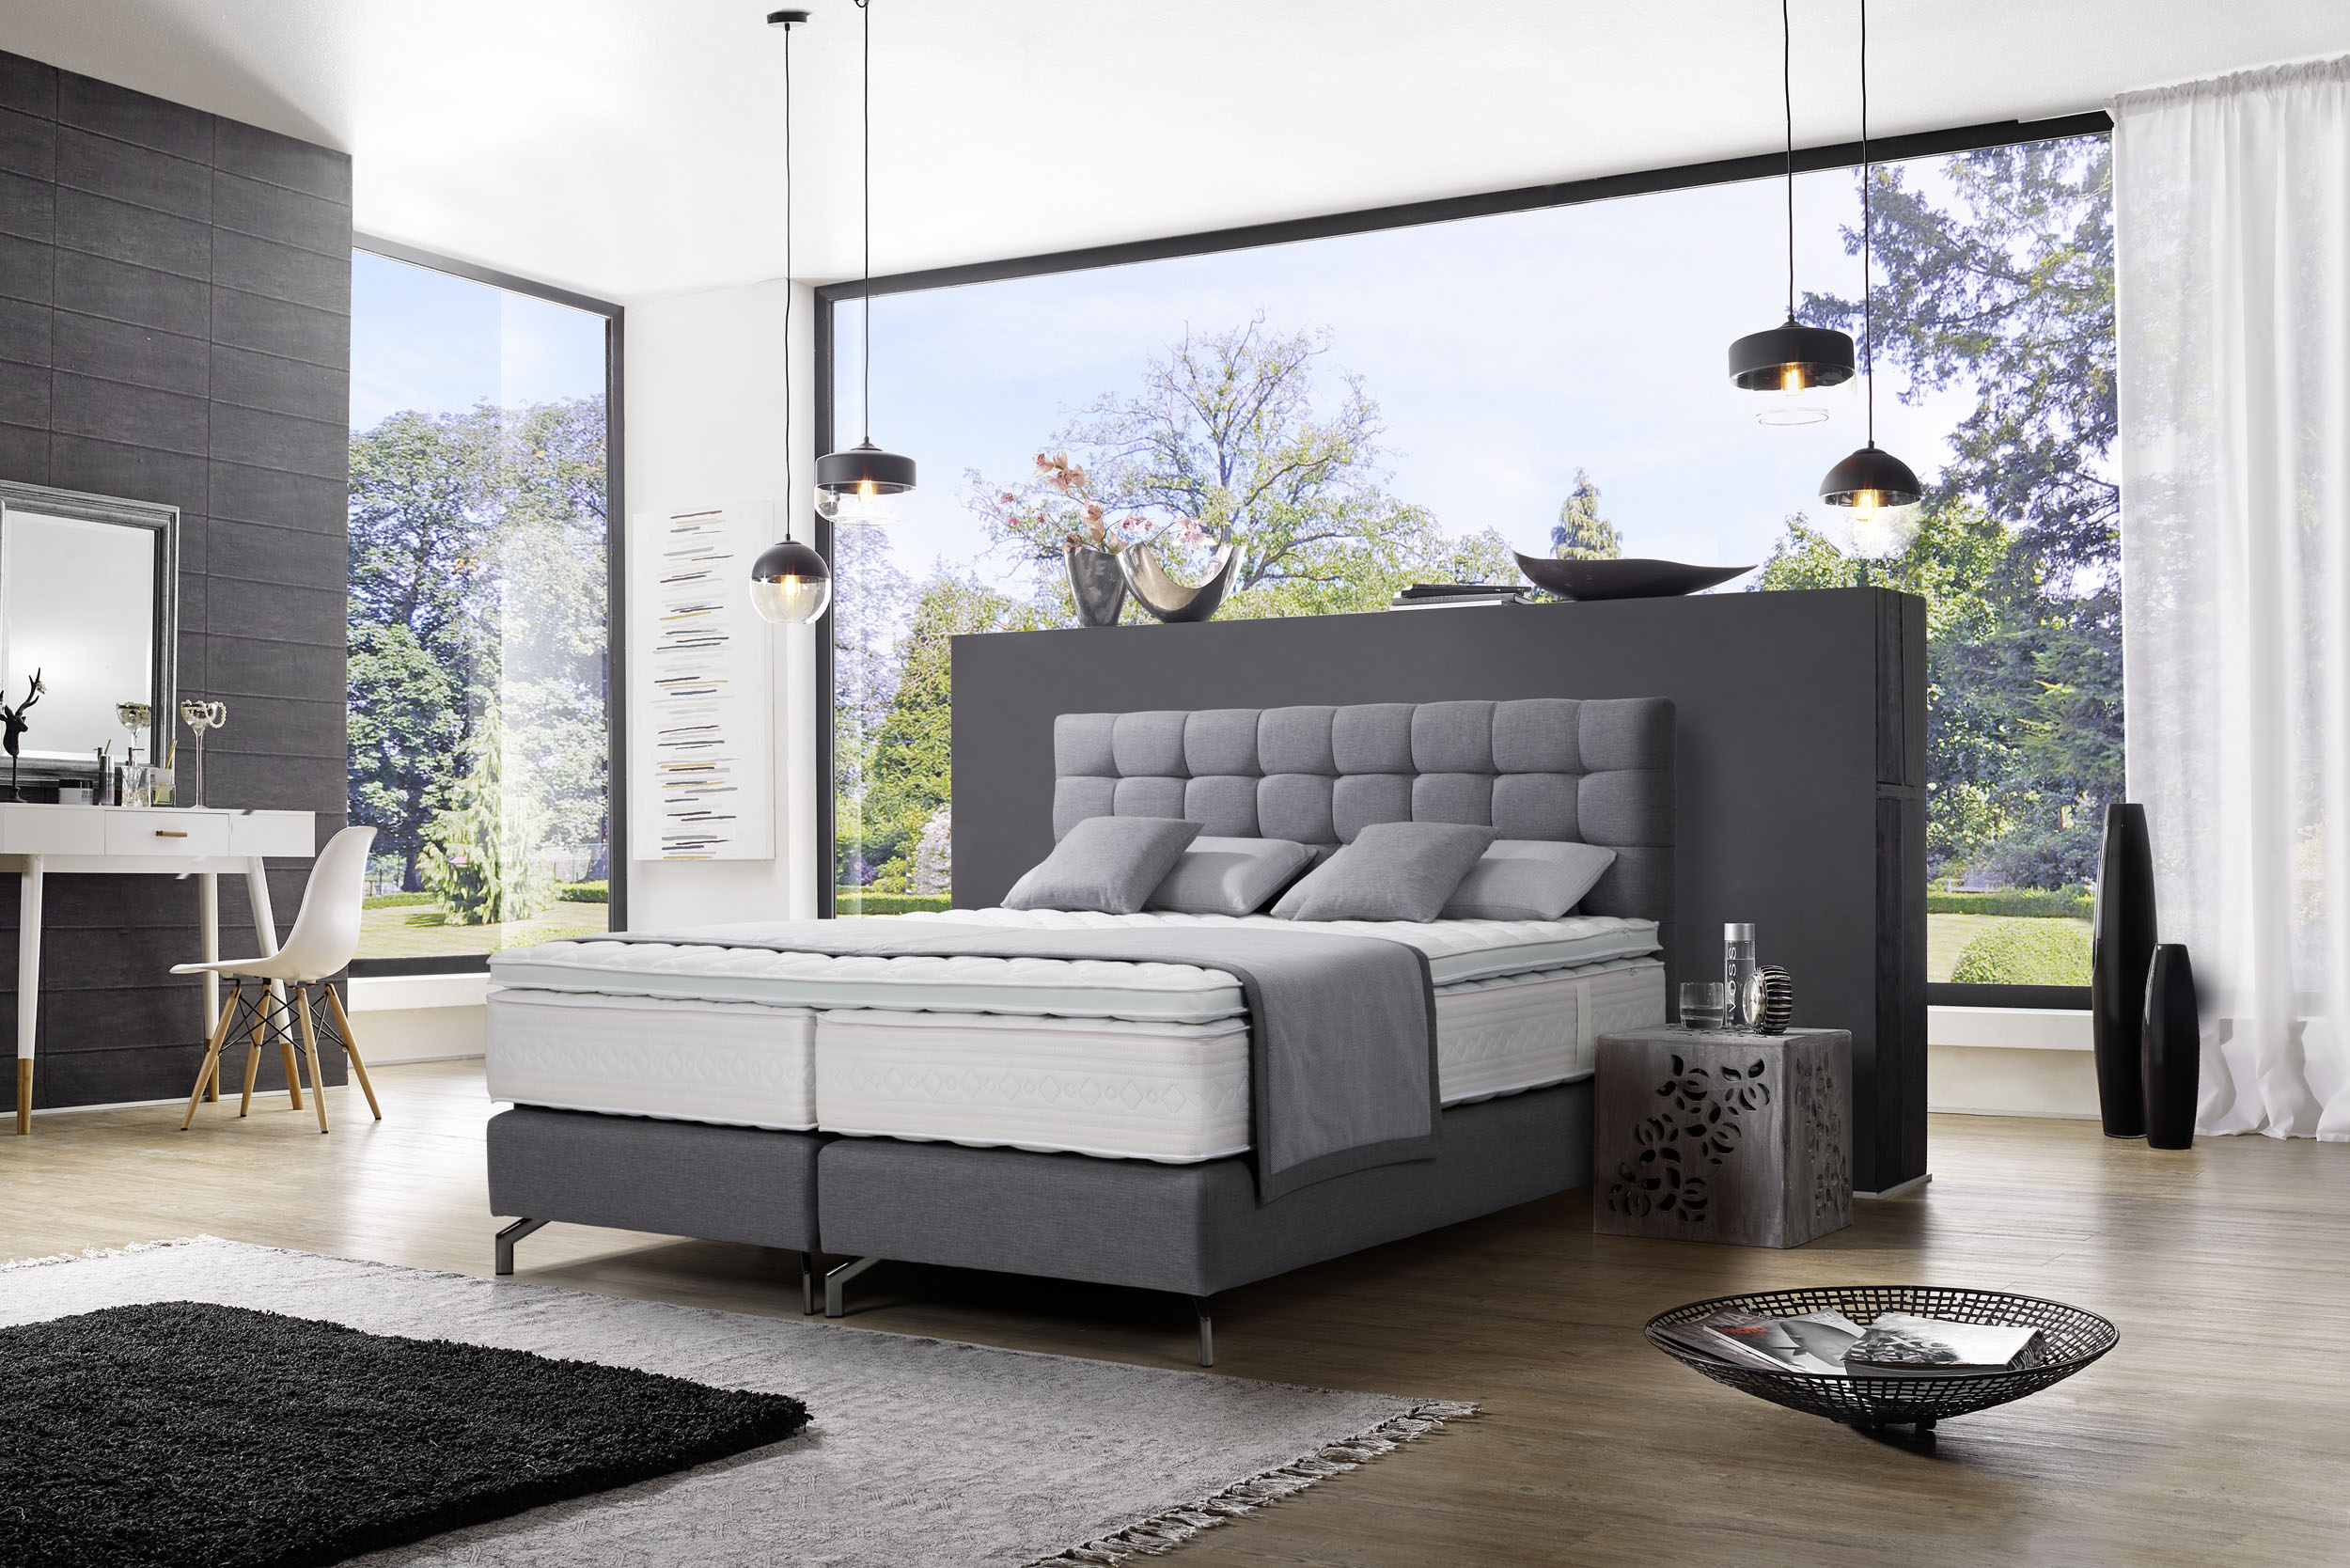 gesund schlafen energie tanken die sterreichische m belindustrie. Black Bedroom Furniture Sets. Home Design Ideas